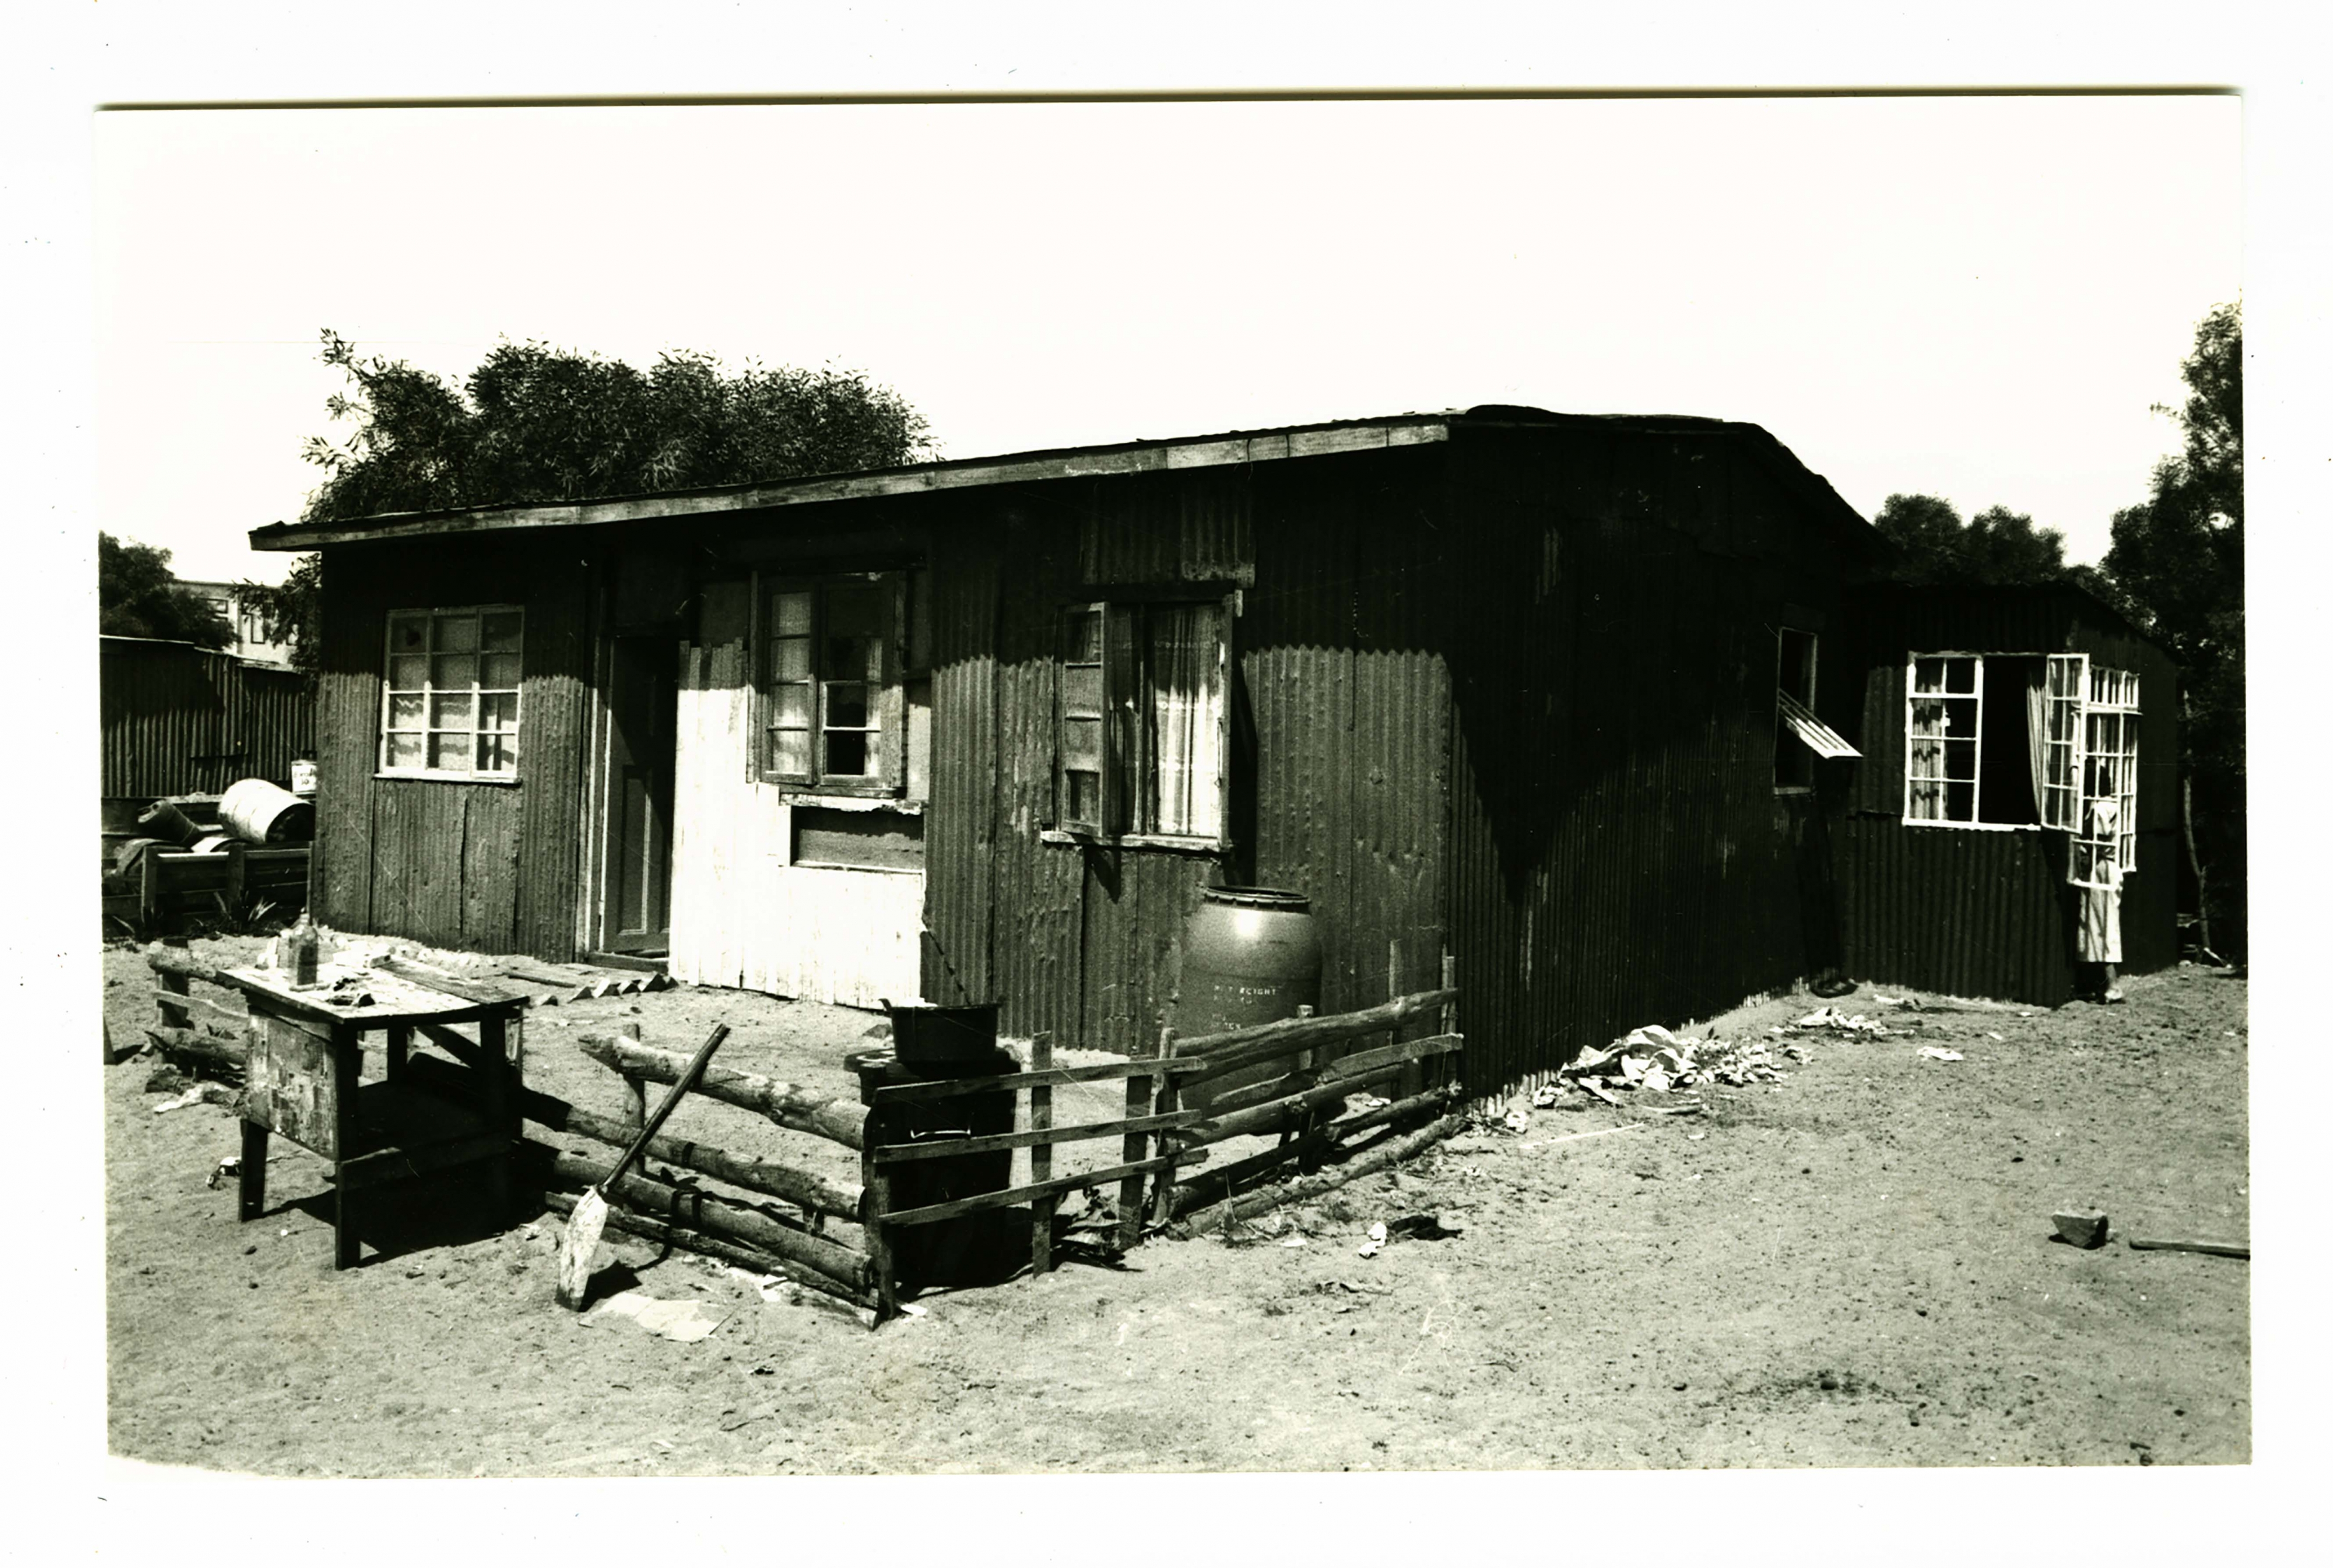 The shack with added room that Pamela Reynolds lived in while working in Crossroads informal settlement